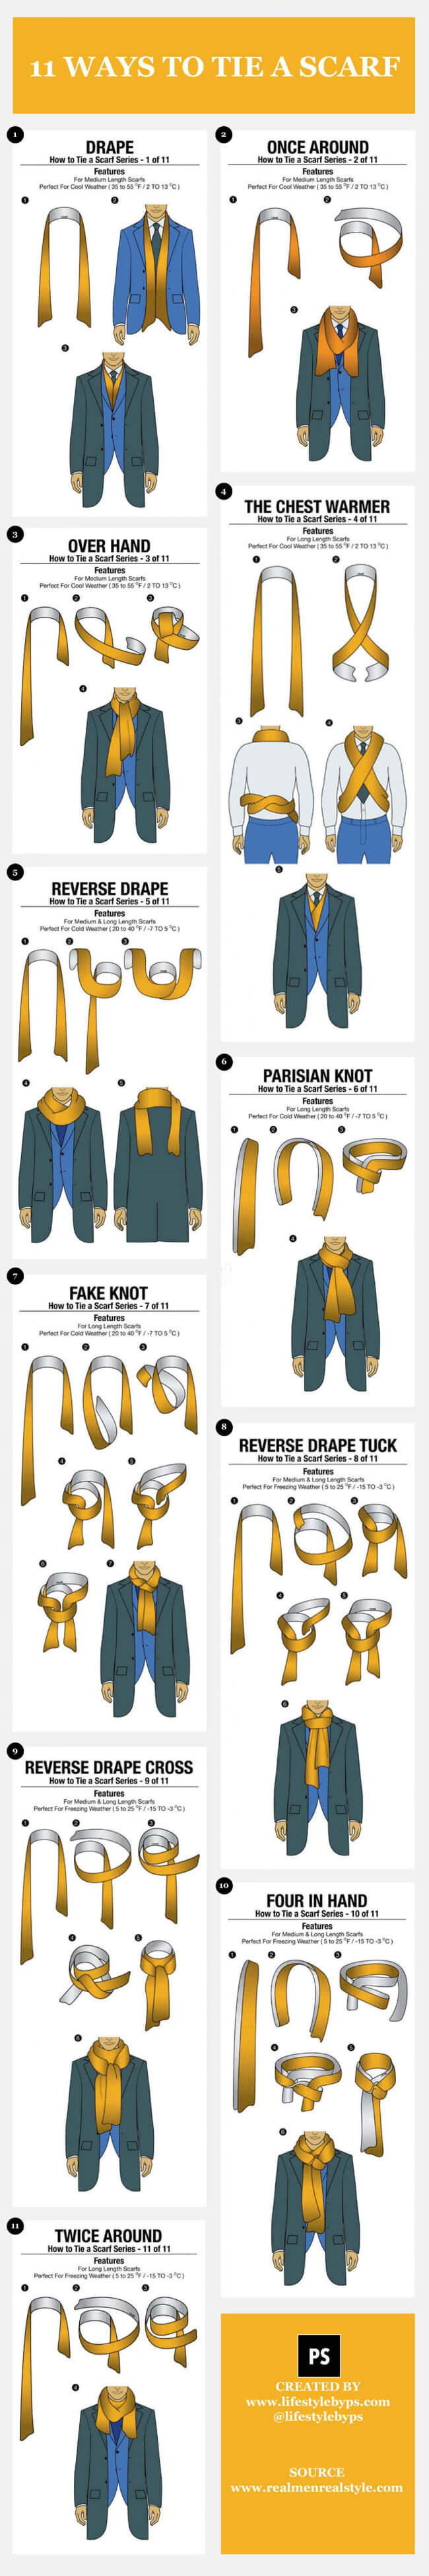 Image with title Tips to Tie a Scarf: 11 Simple Ways